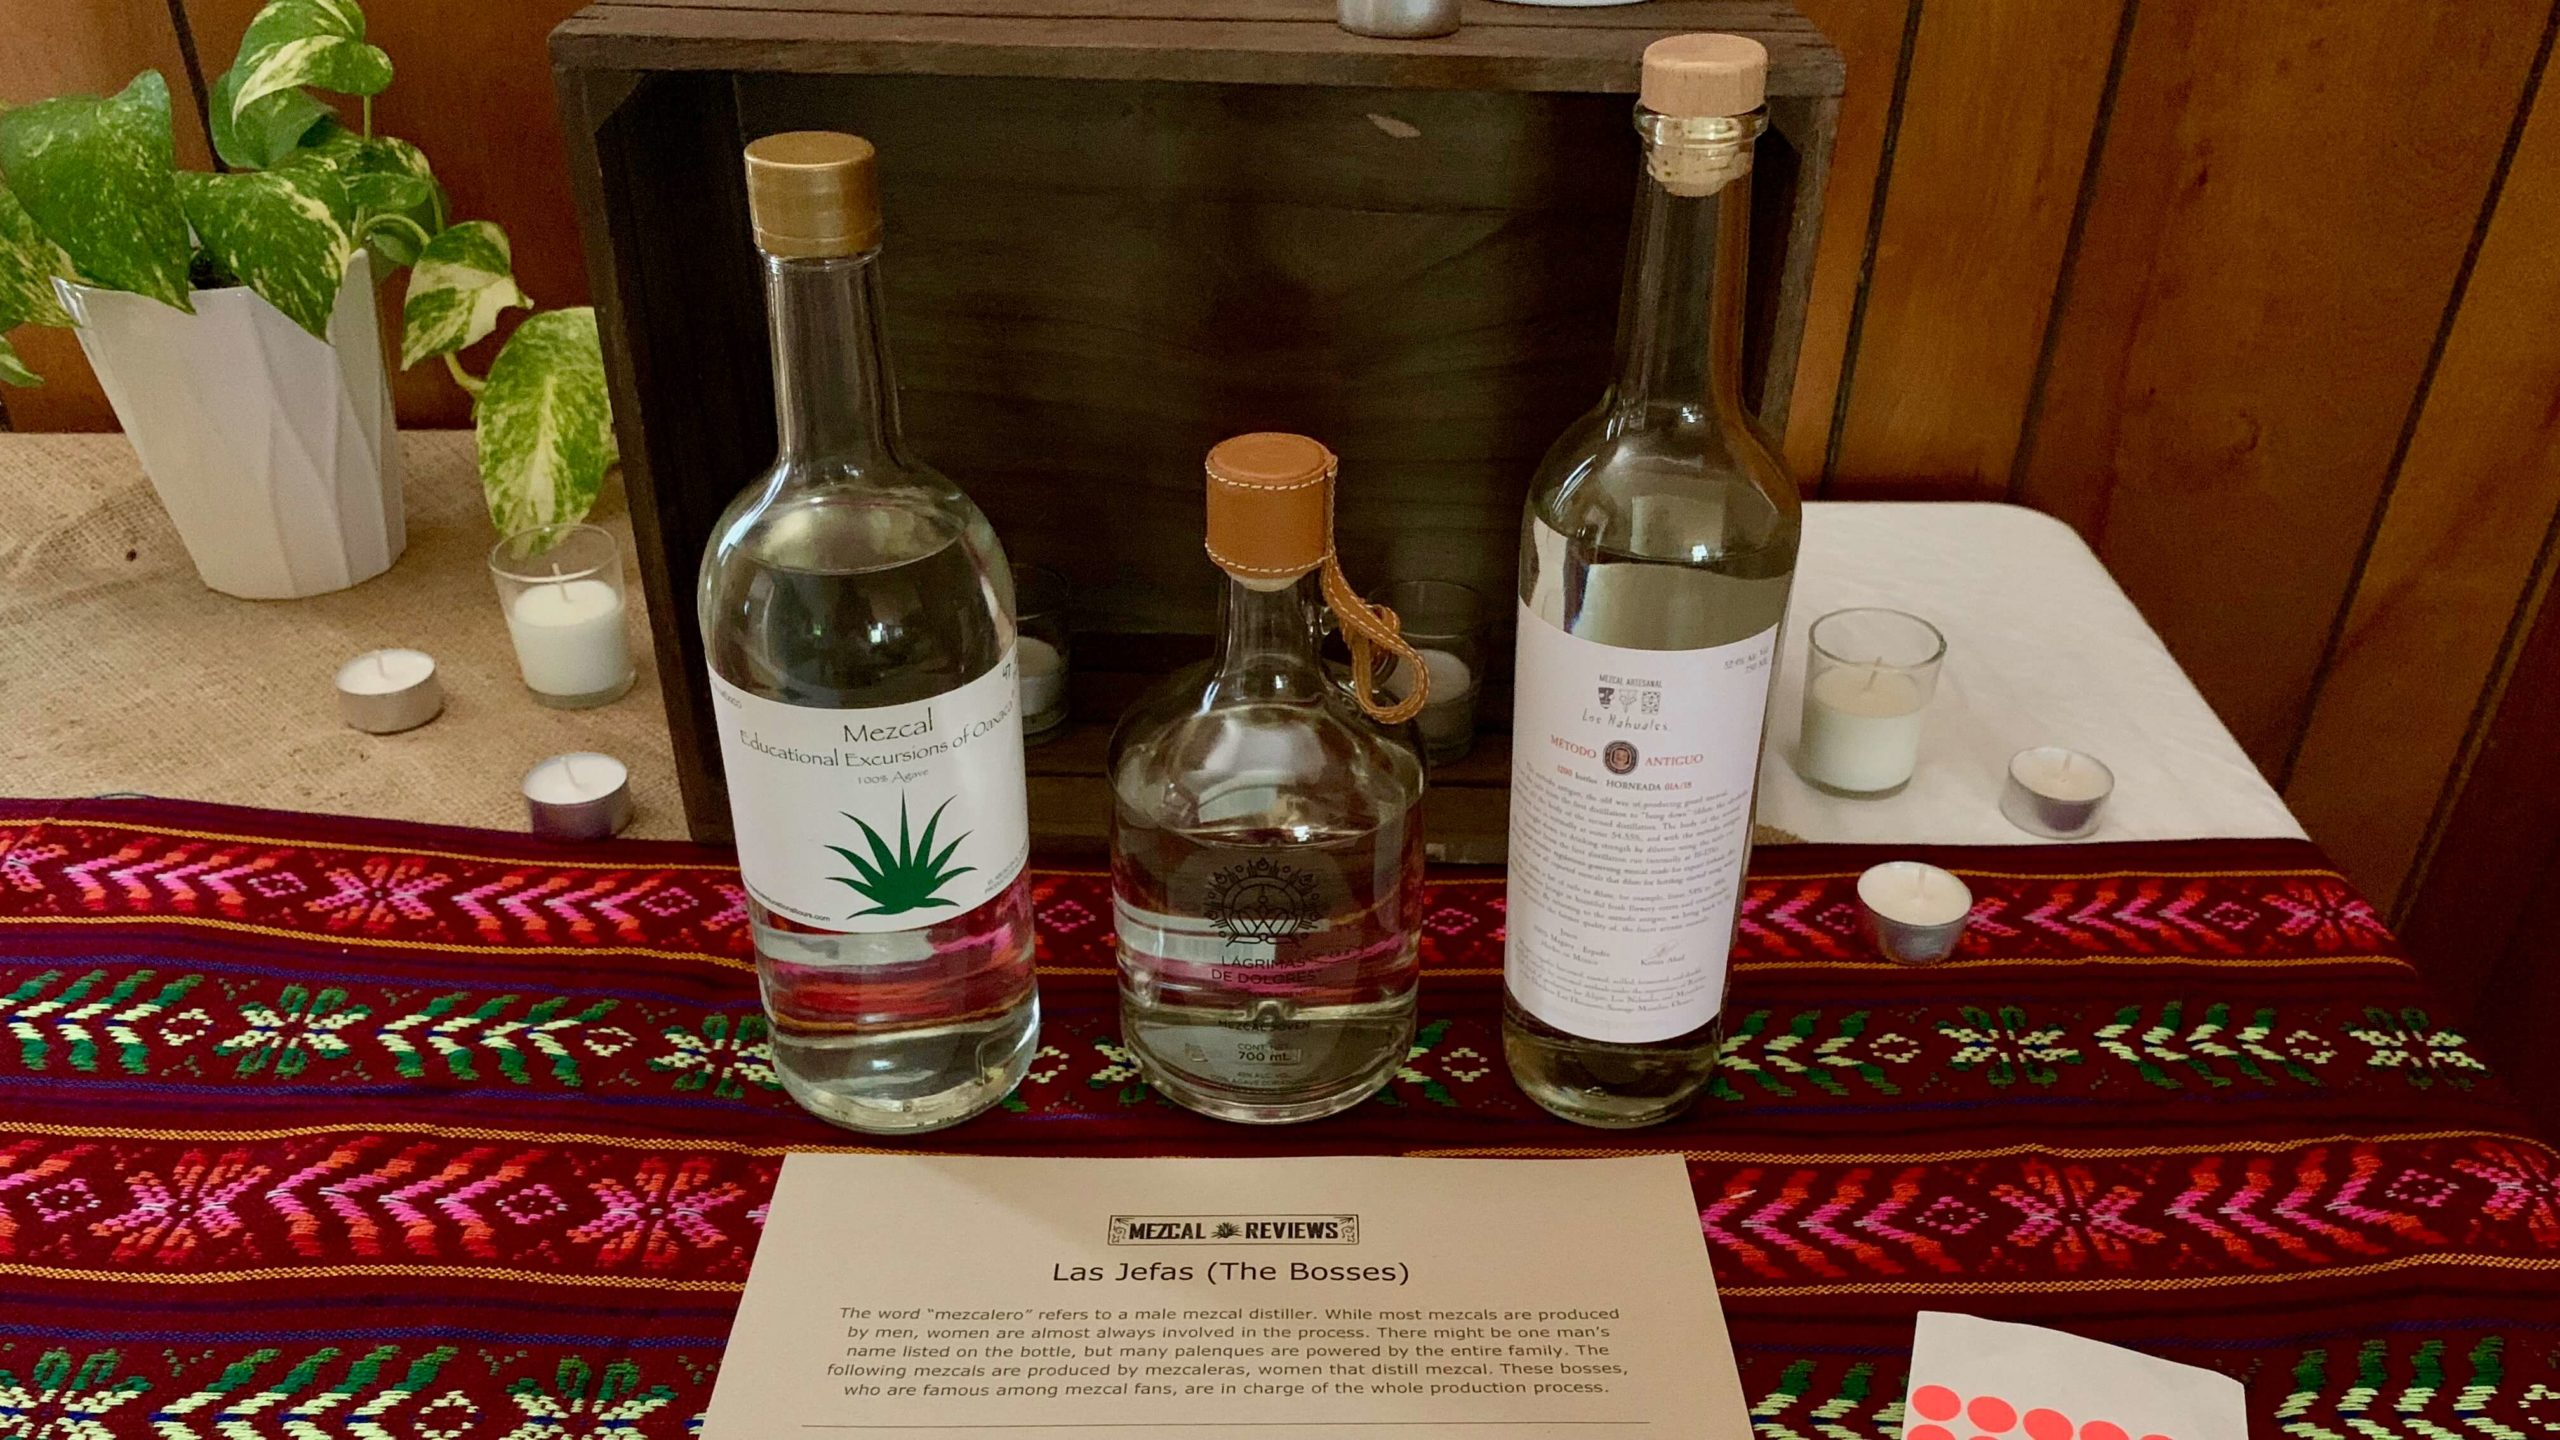 Mezcal Reviews Tasting Mezcalera Flight